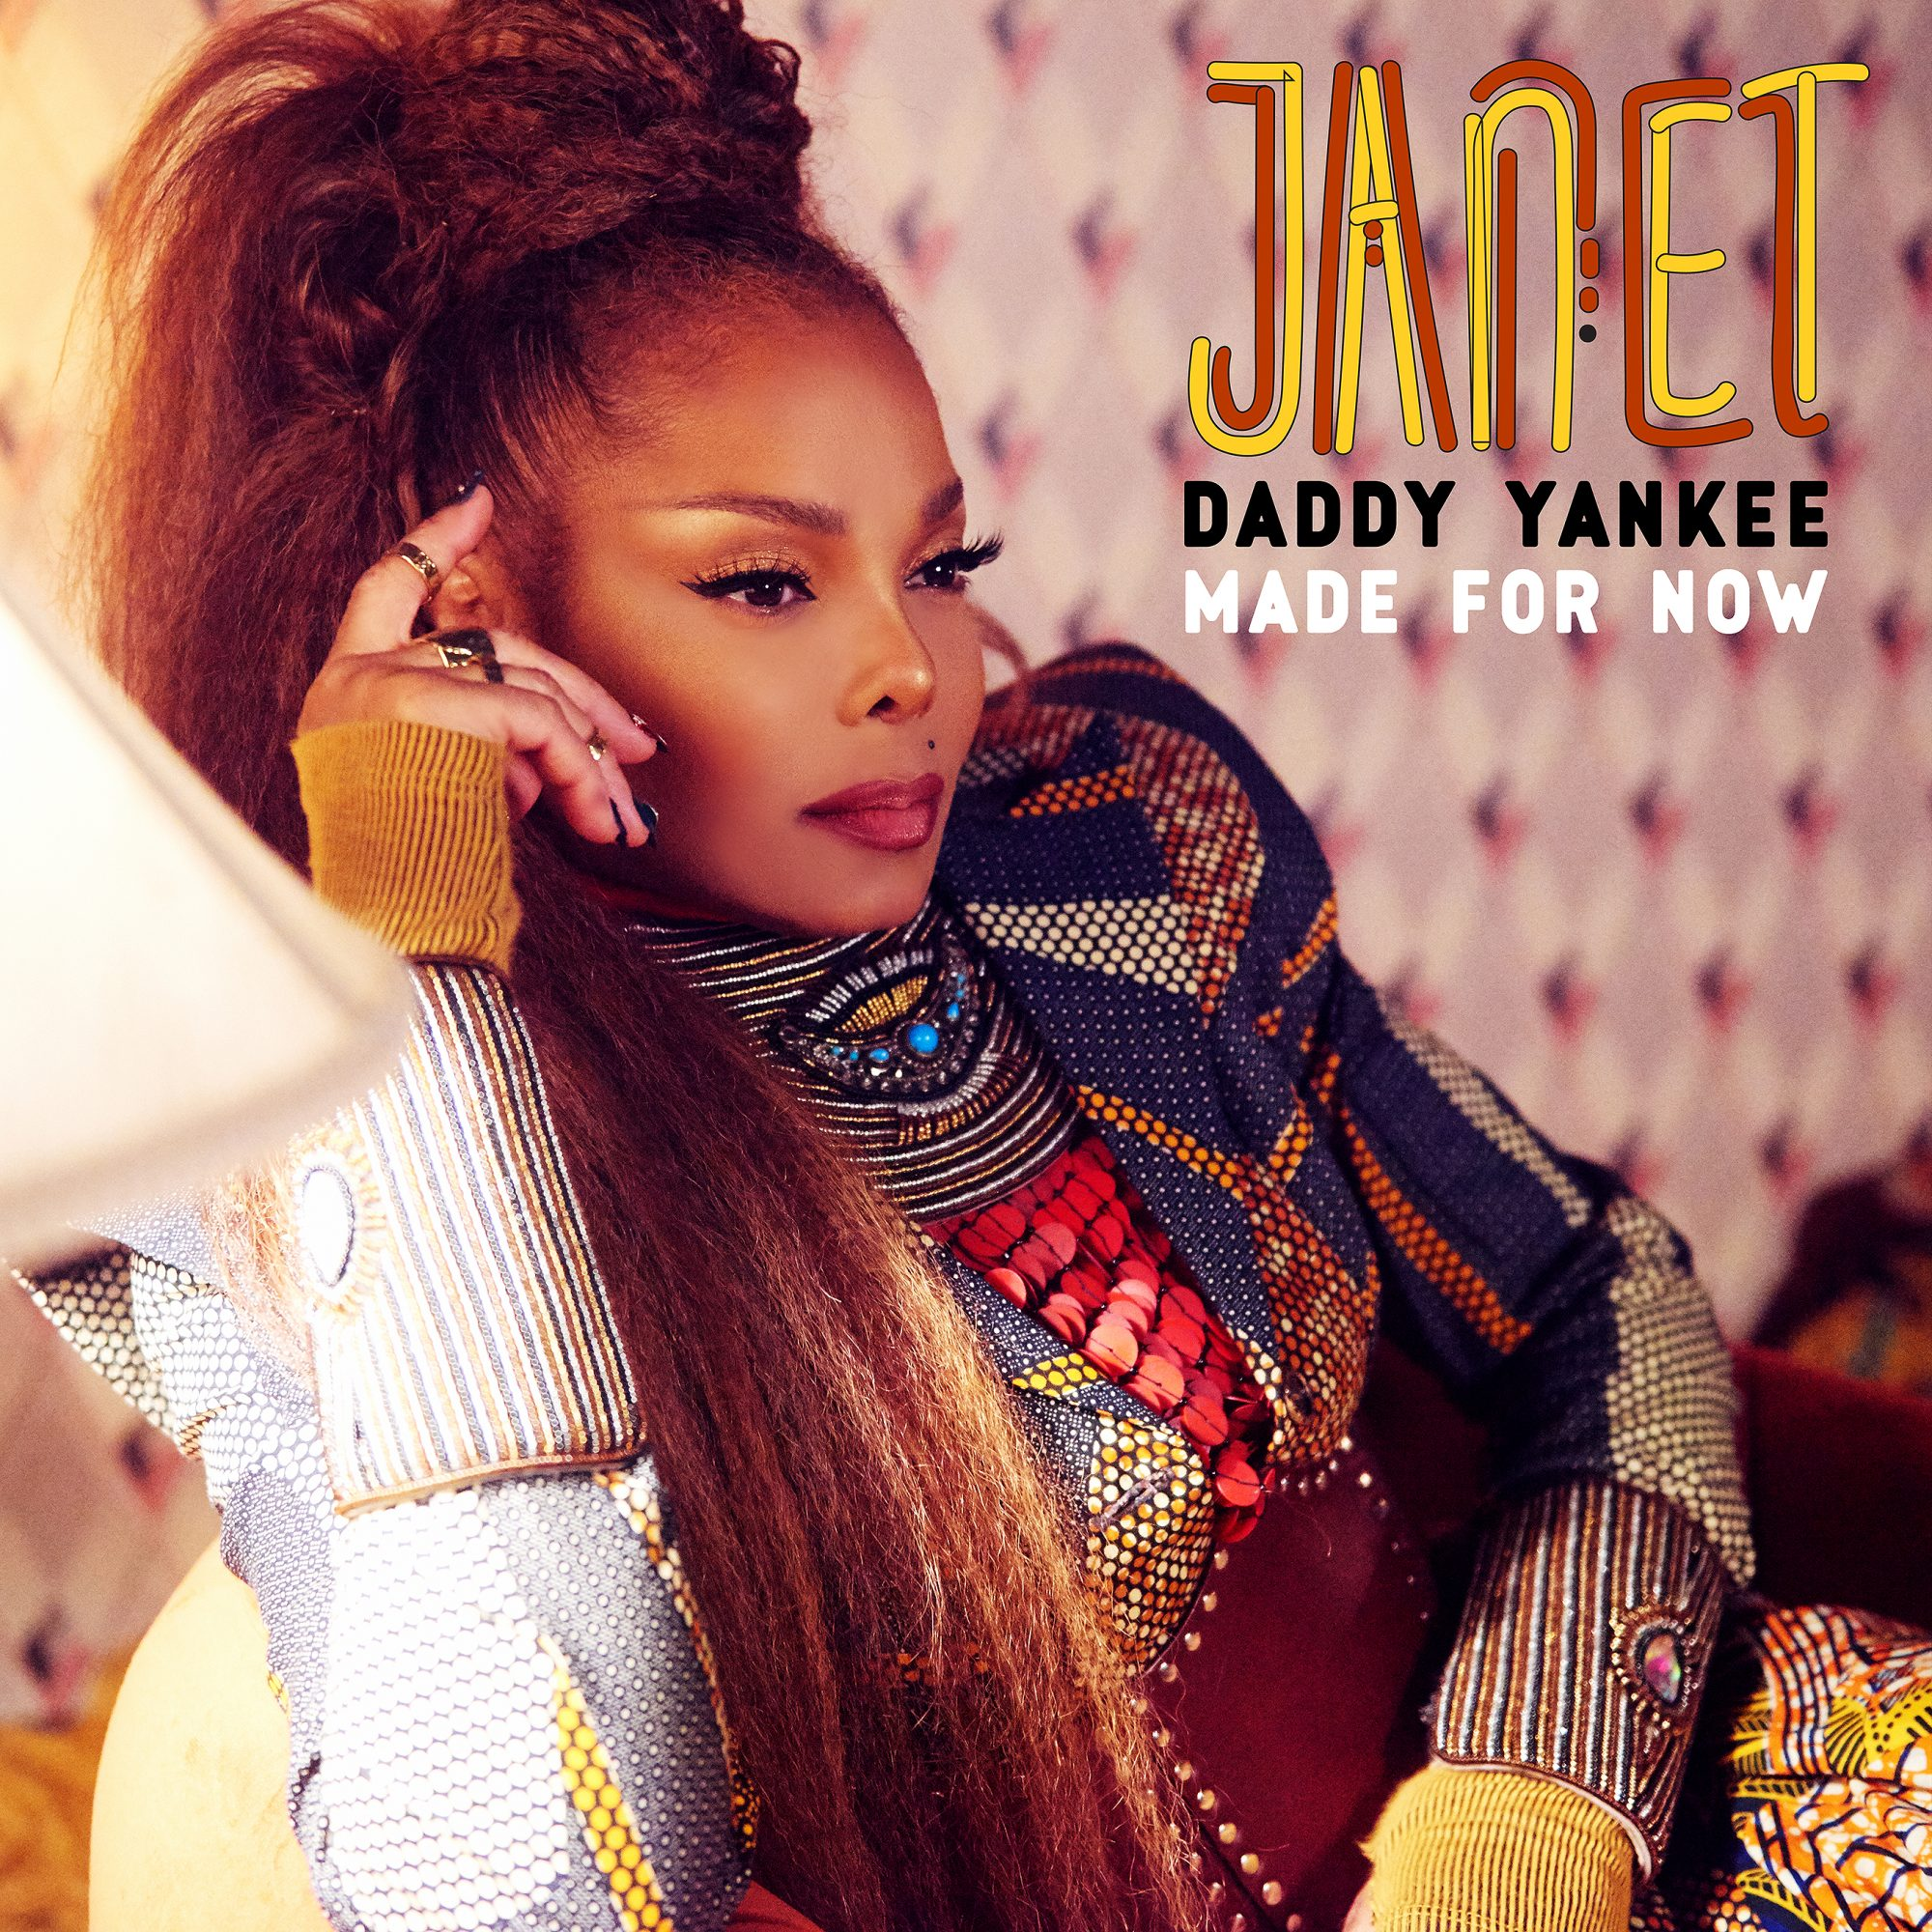 Janet Jackson Daddy Yankee Made for Now